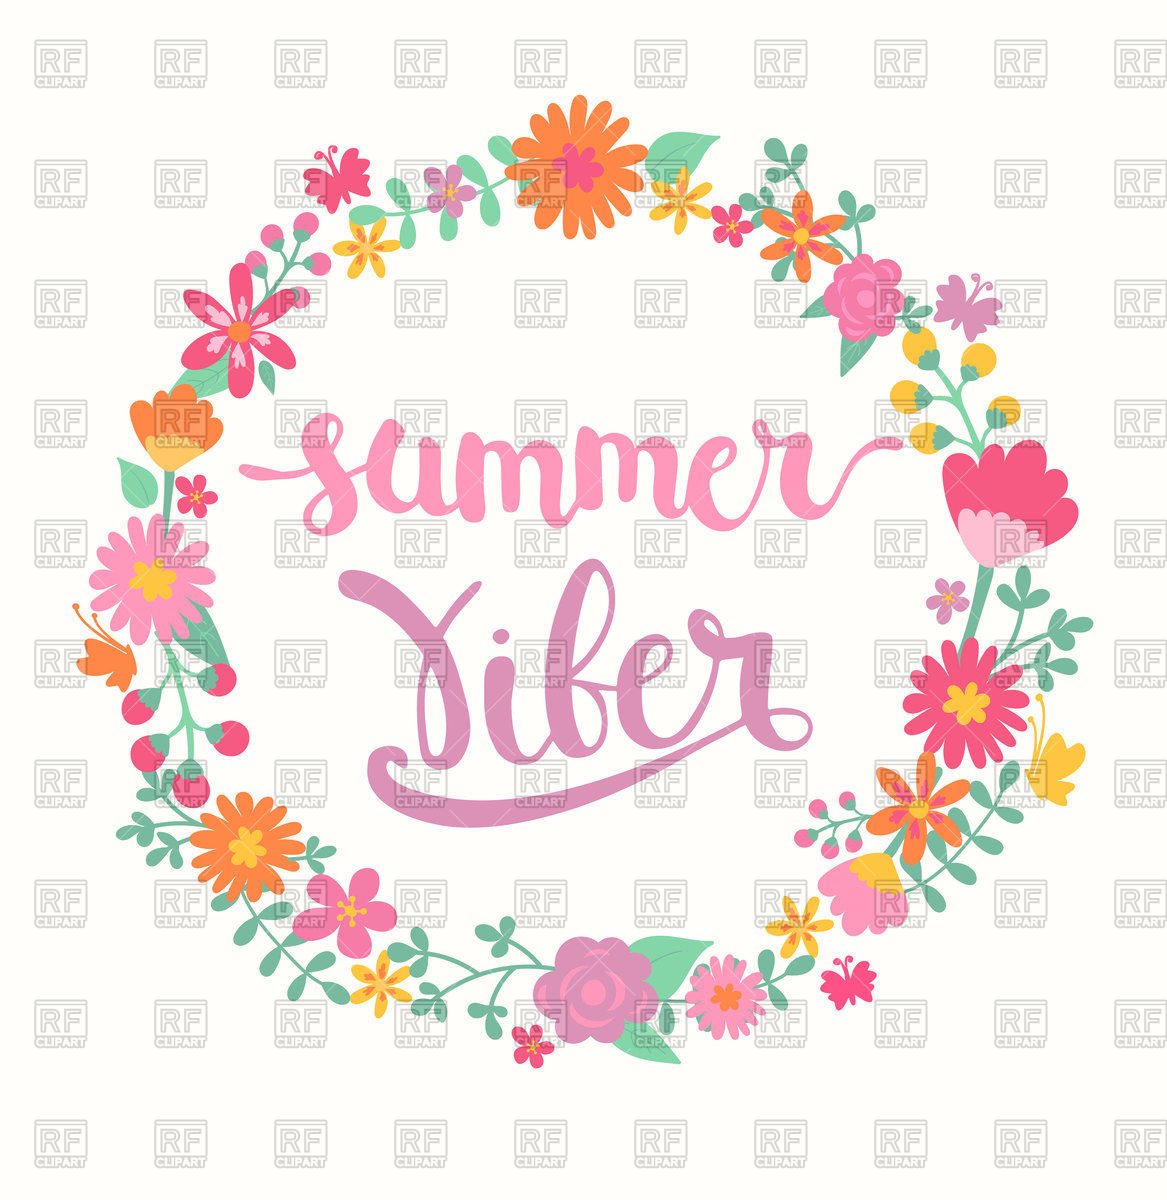 1167x1200 Summer Viber Lettering In Floral Wreath Vector Image Vector